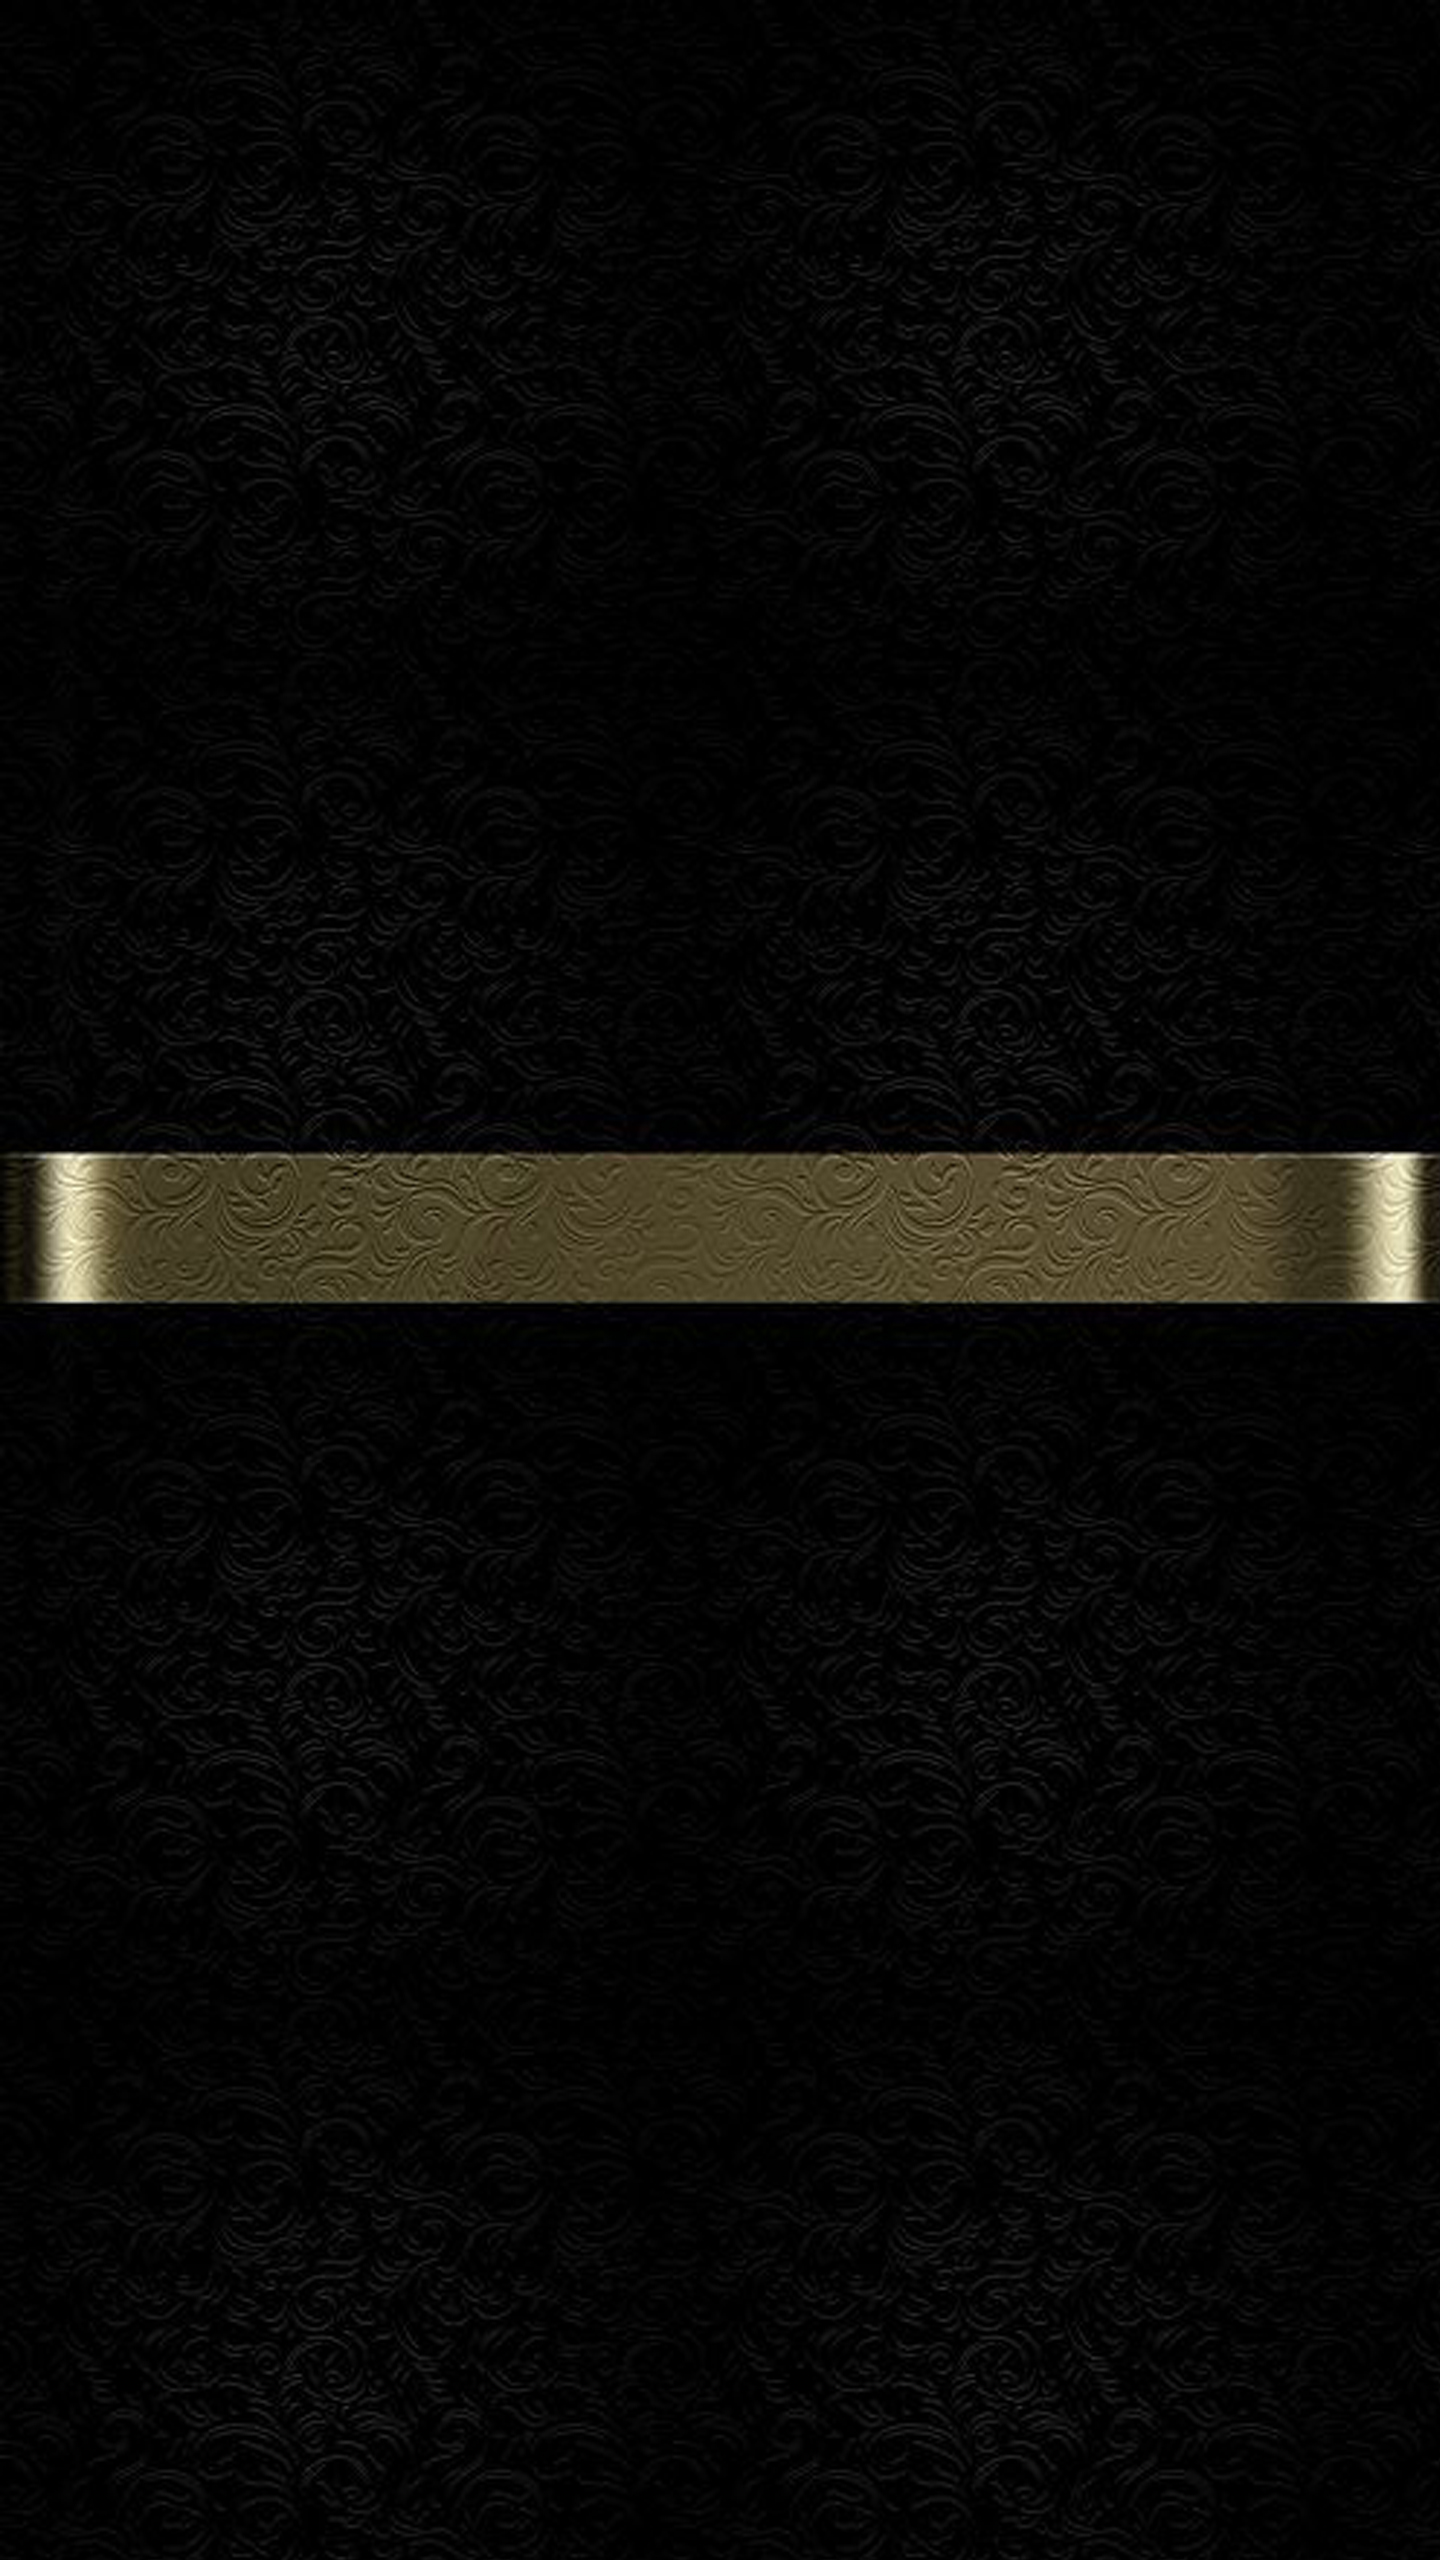 I Would Like To Share You This Wallpaper For Your Samsung Galaxy S7 Edge Call The Dark 09 A Background With Gold Color Line